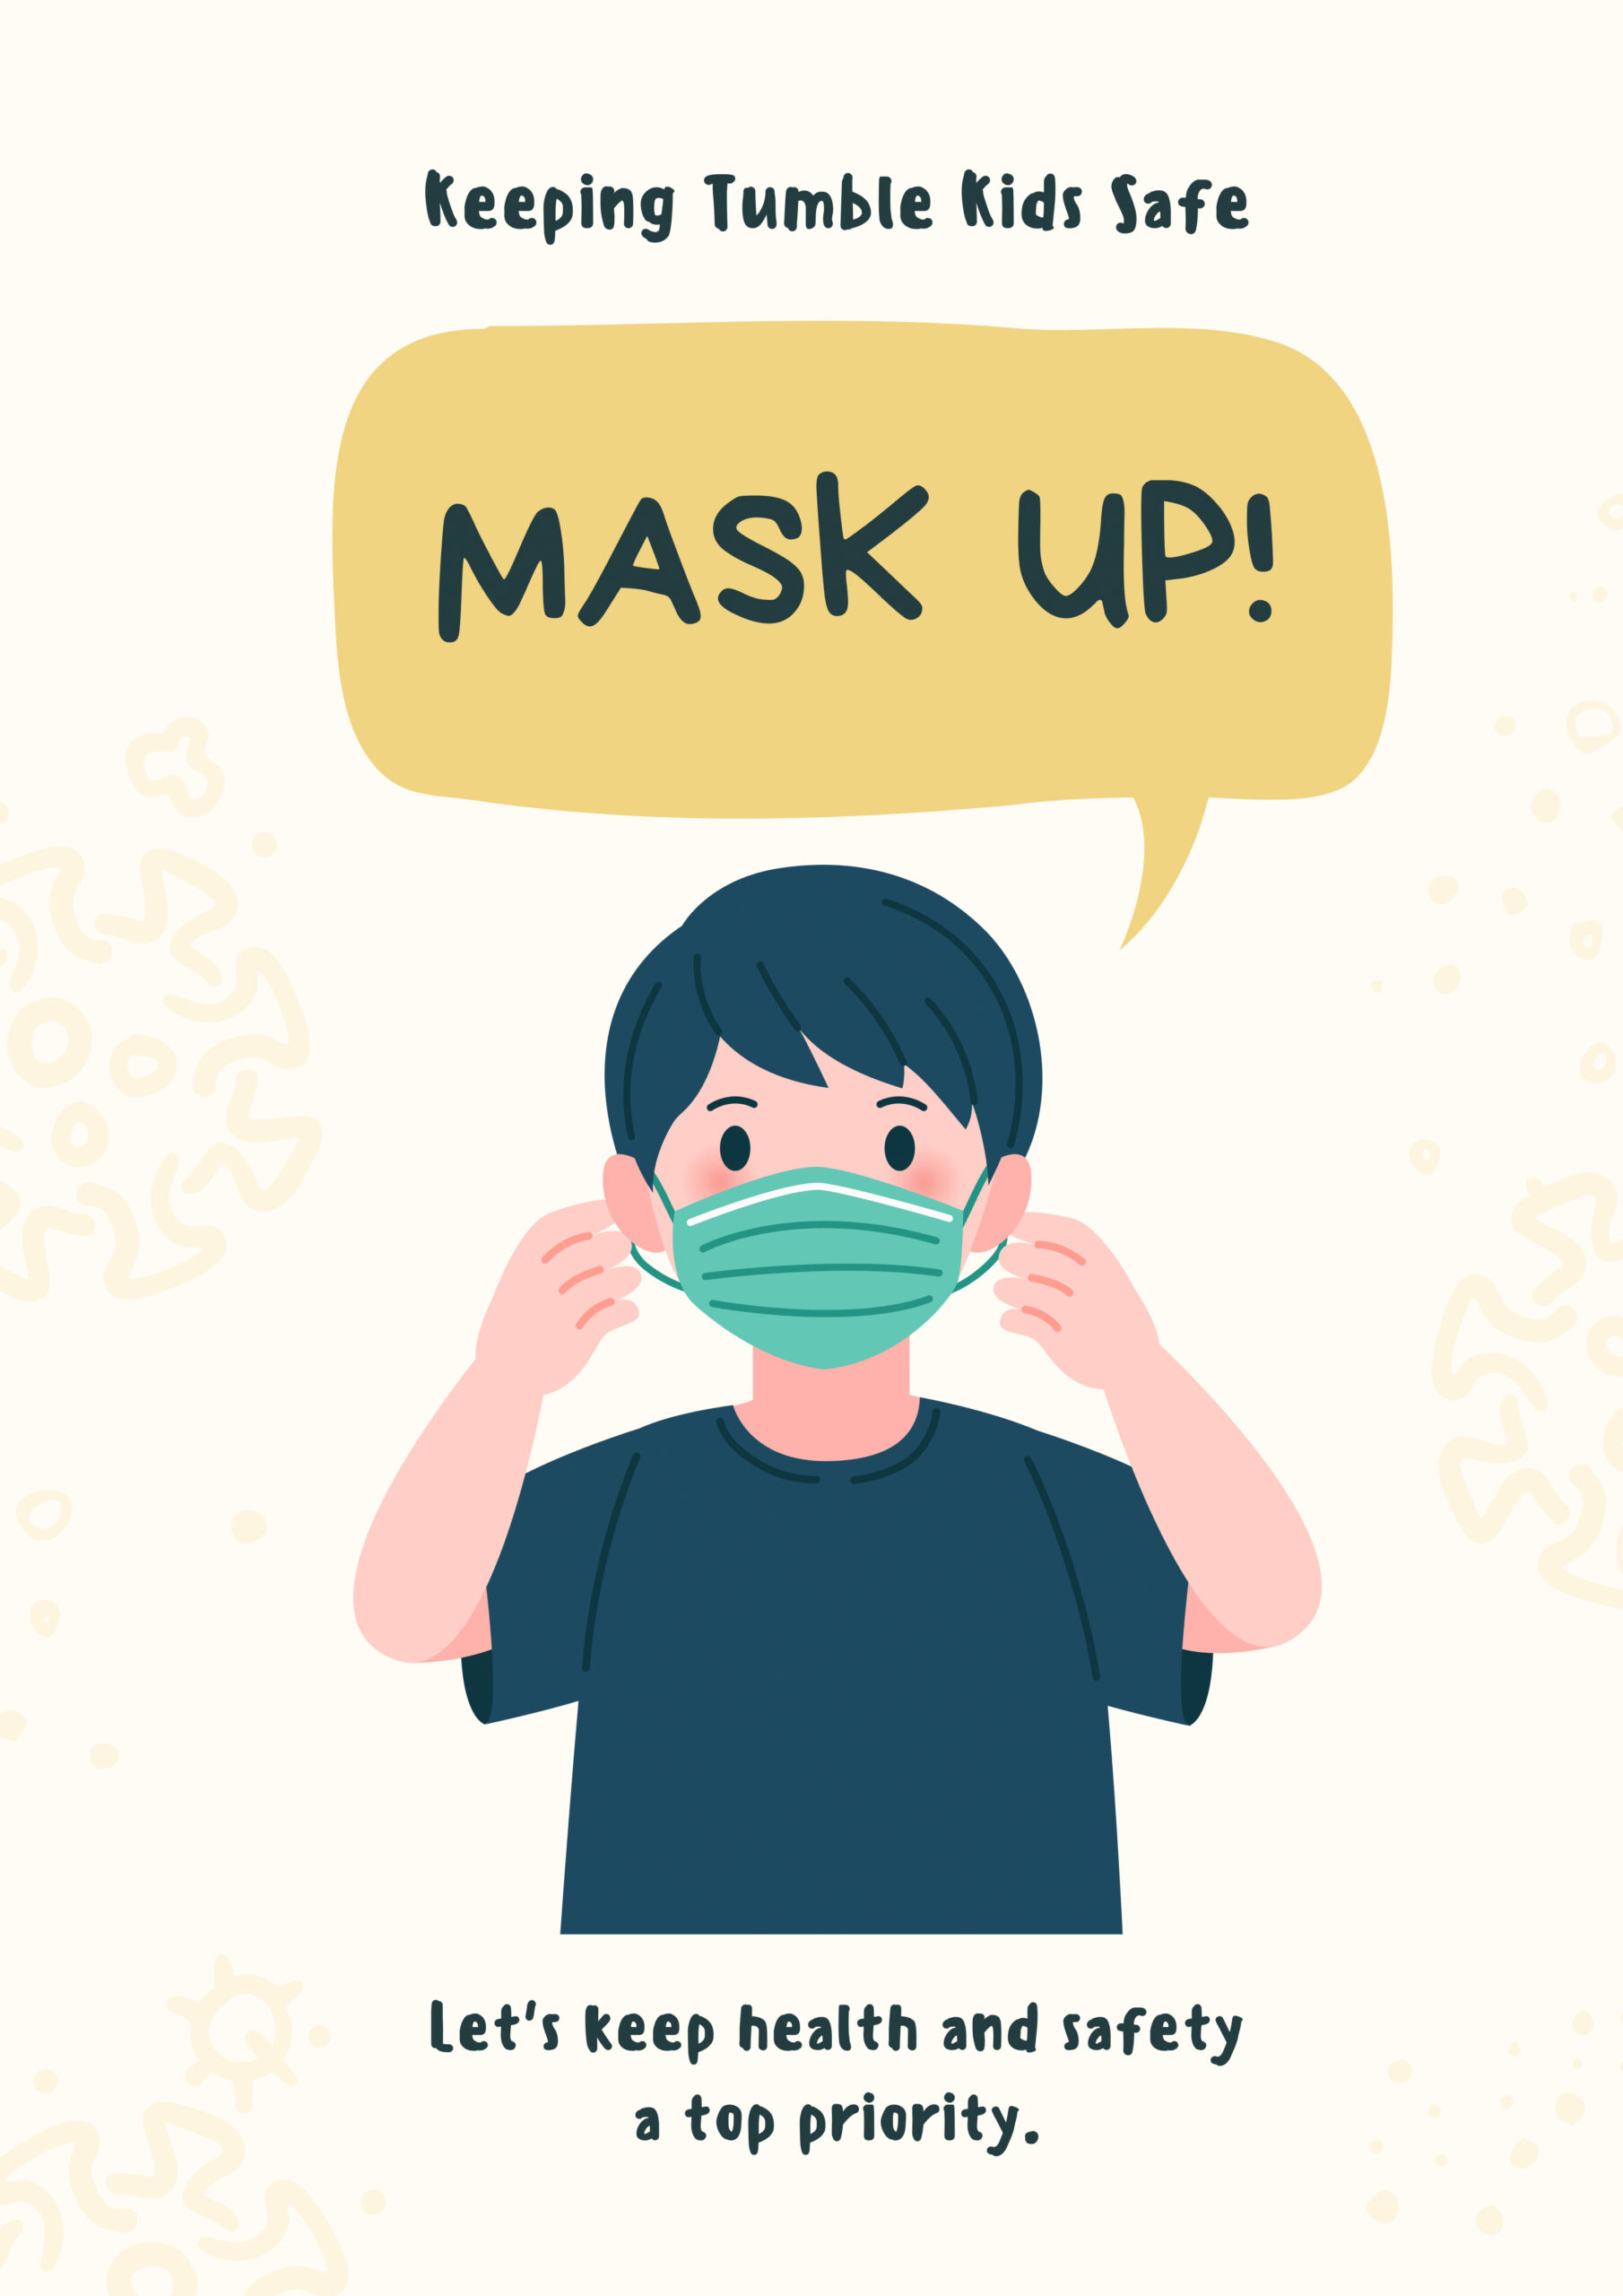 Mask up! Let's keep health and safety a top priority.